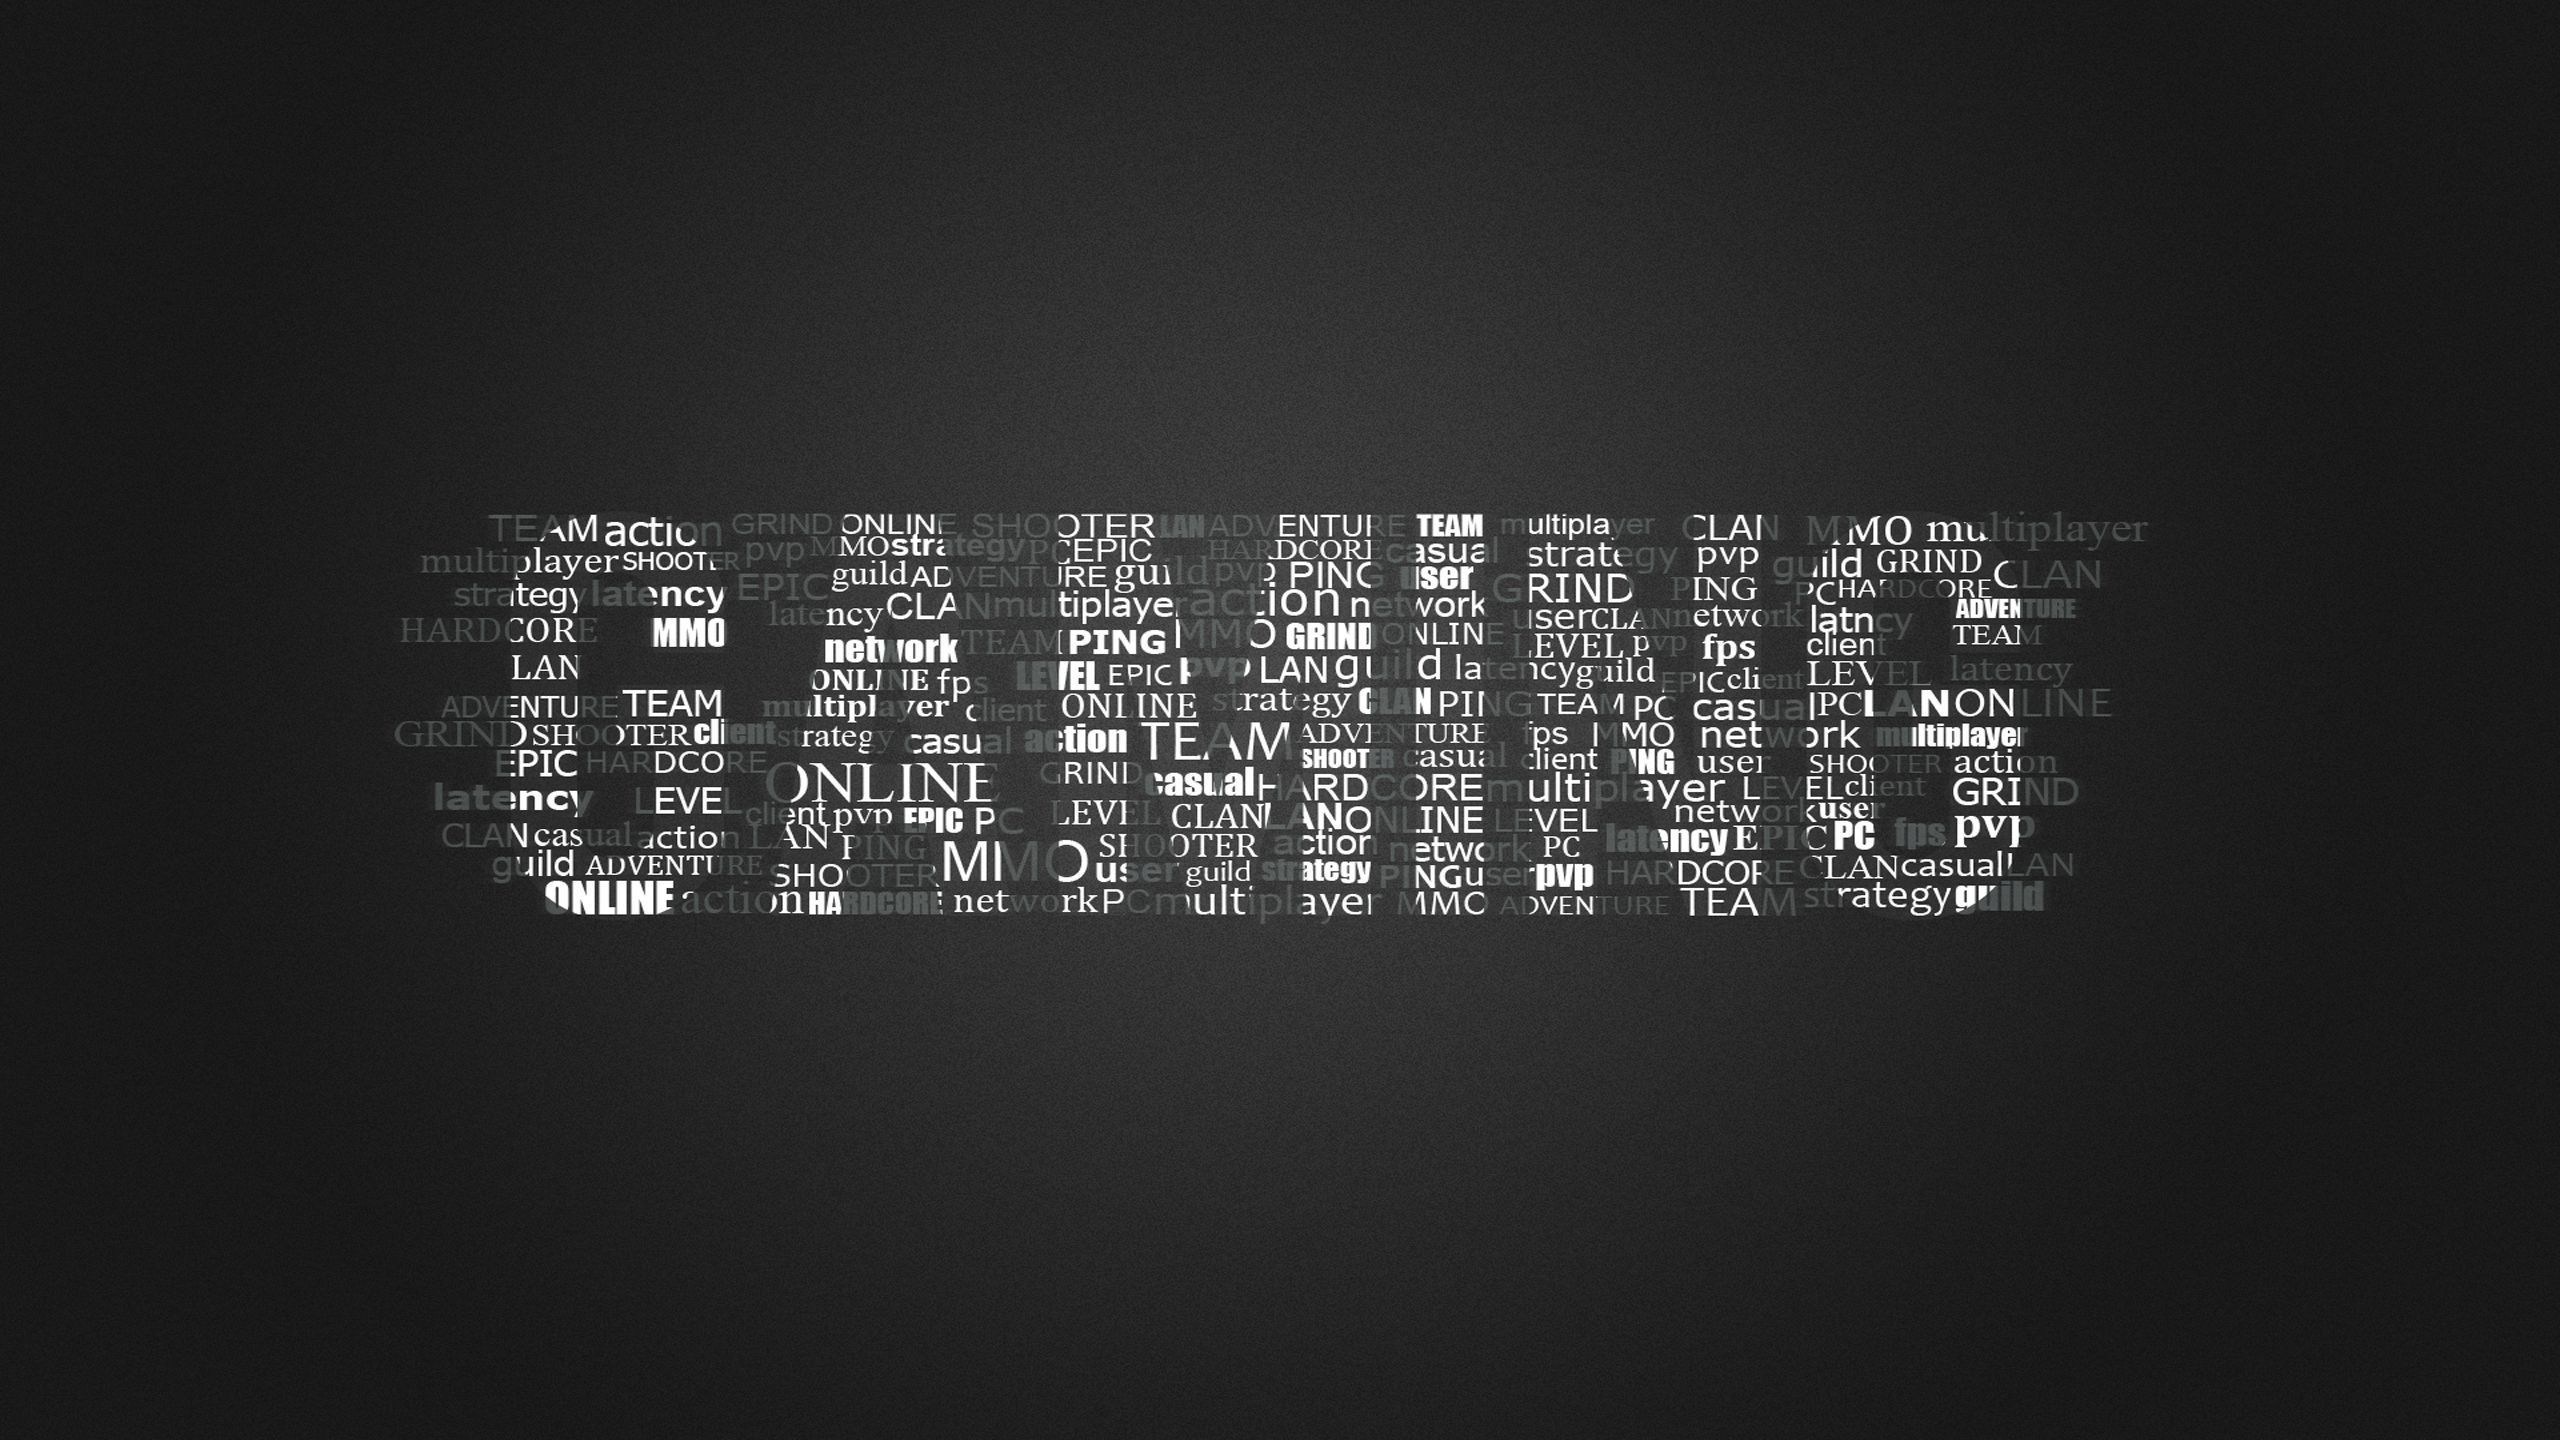 2560x1440 Wallpaper Gaming Fotos De Games Games Jogos Jogos